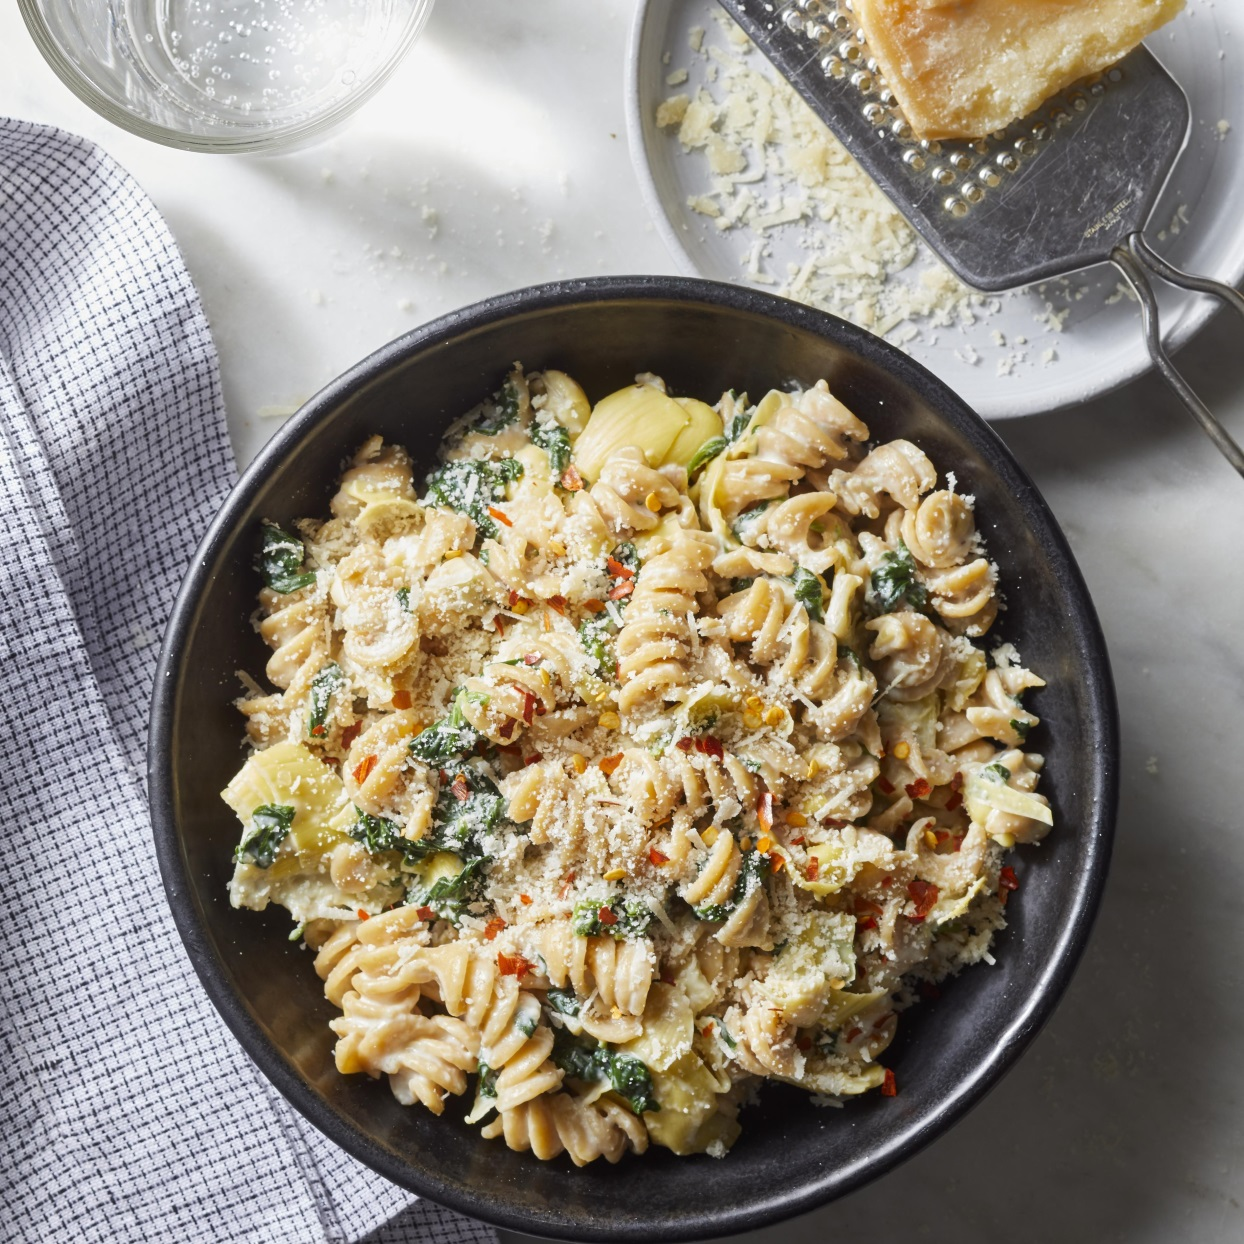 If you've ever wanted to make a meal out of warm spinach and artichoke dip, this creamy pasta is for you. And here's what's almost as good as the flavor of this comforting dish: the fact that this healthy dinner takes just 20 minutes to prepare.